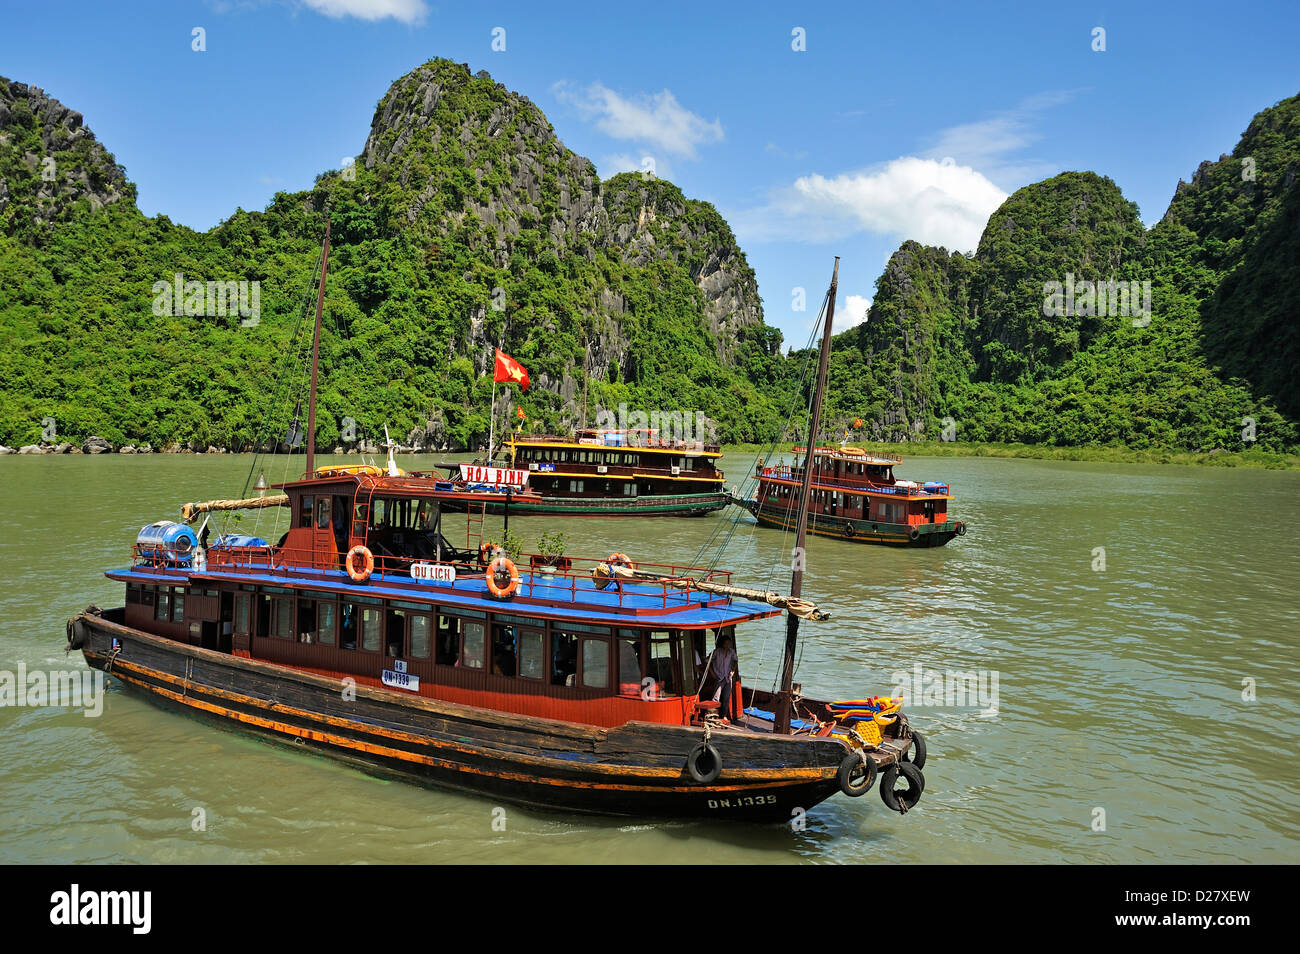 Halong Bay, Vietnam - Junk boats - Stock Image